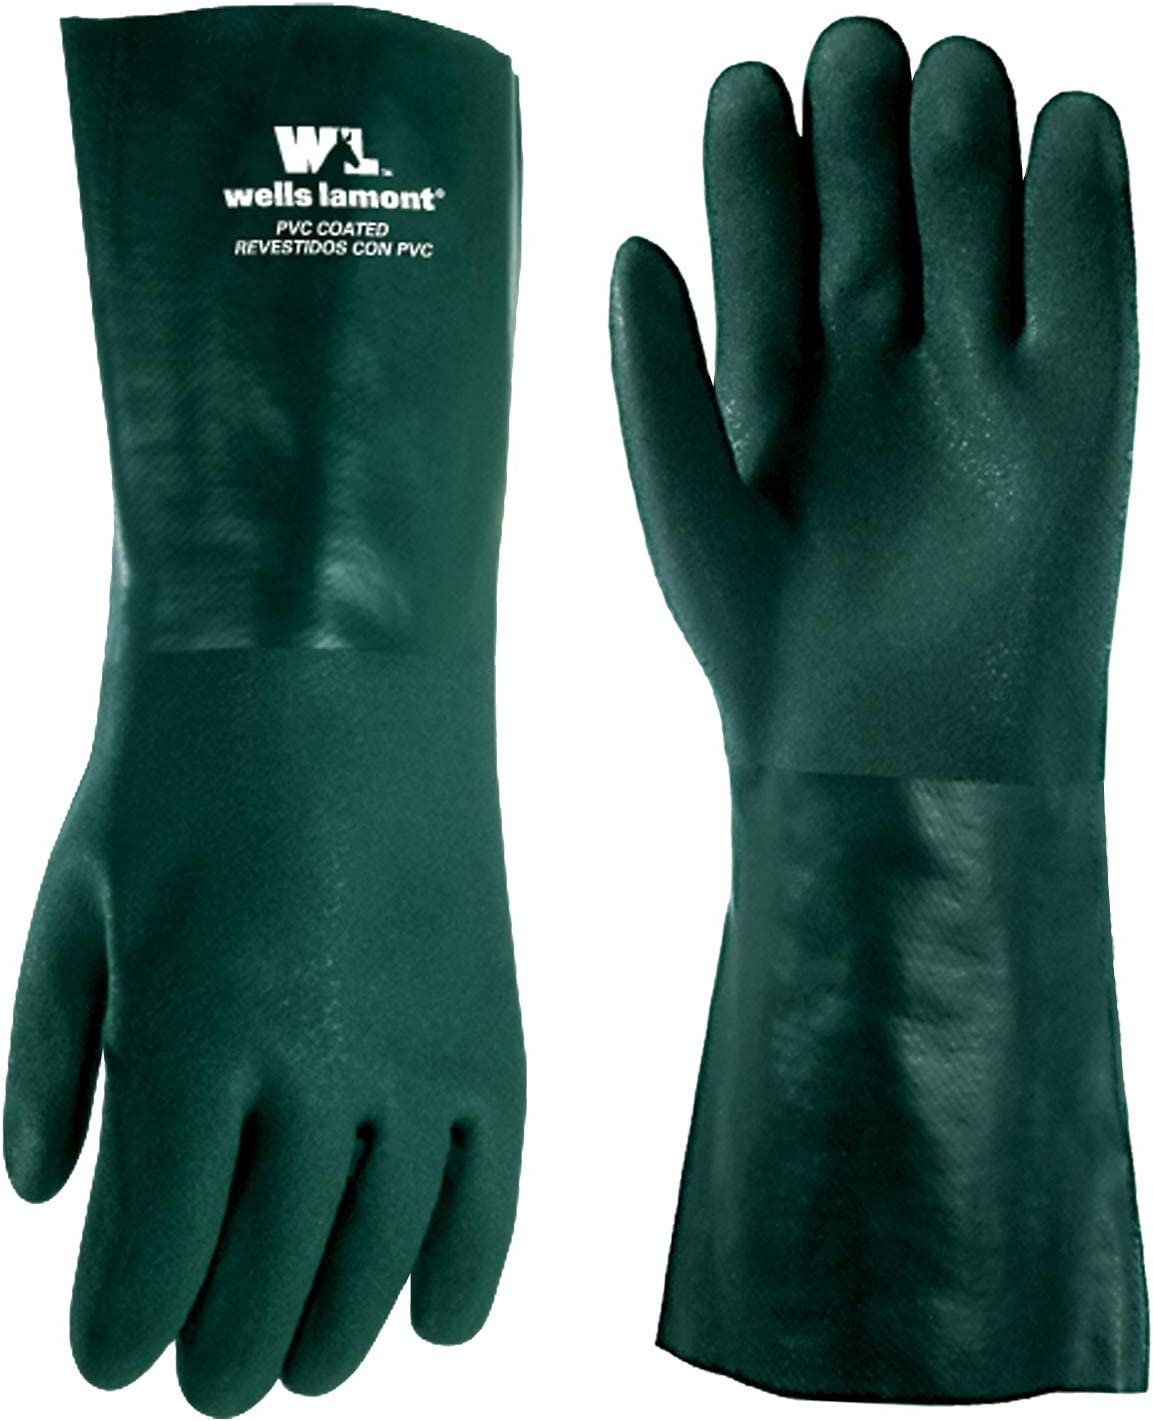 Heavy Duty PVC Chemical Gloves, One Size (Wells Lamont 167L) - Work Gloves -